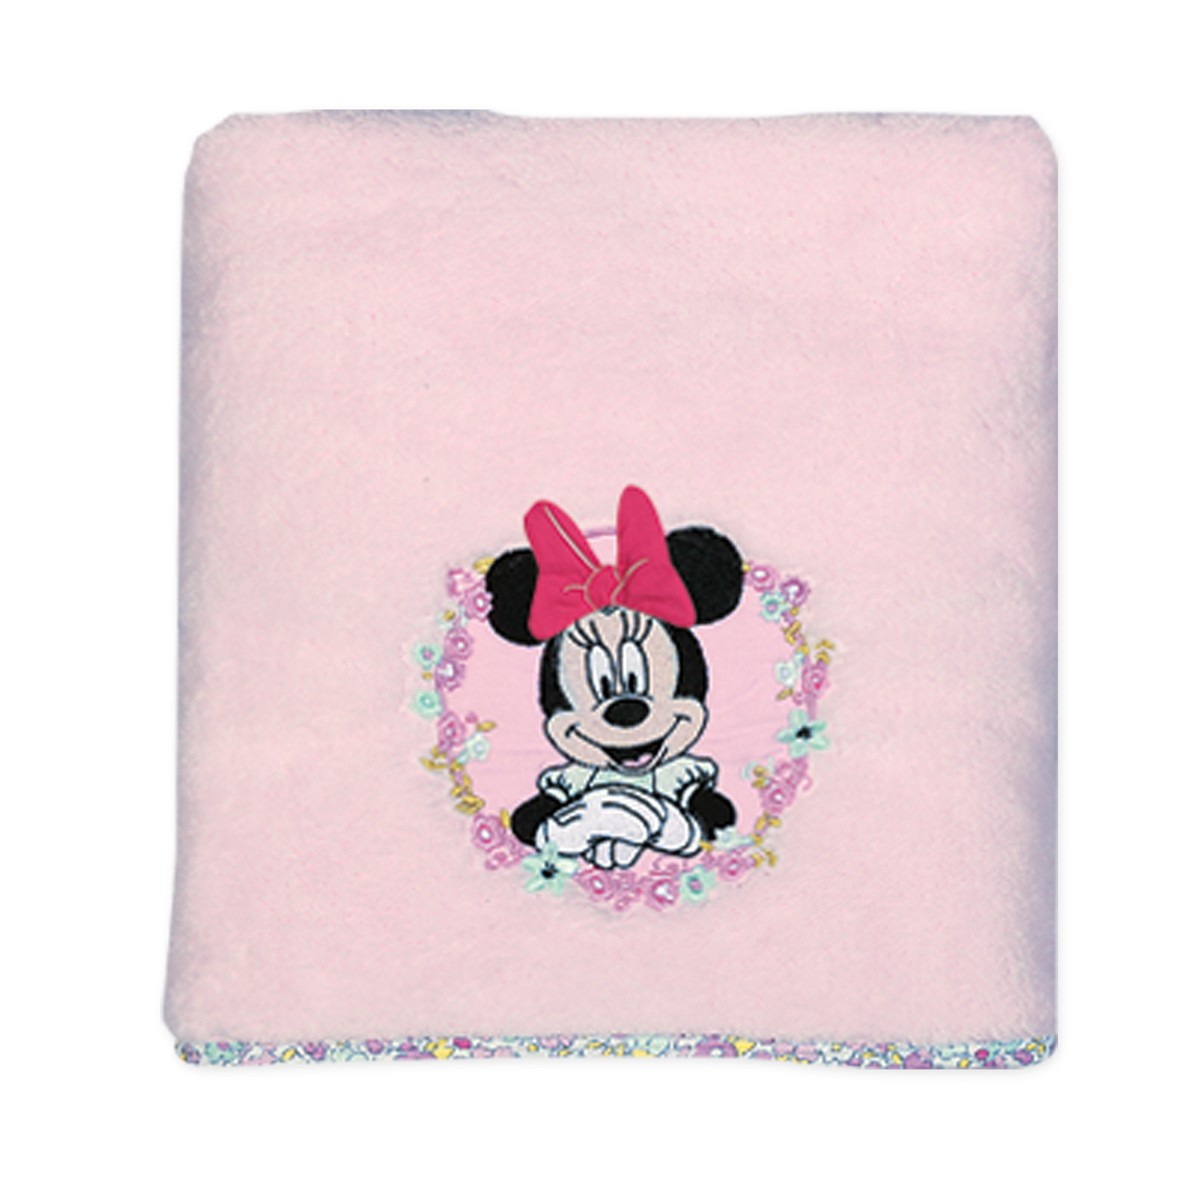 Κουβέρτα Fleece Αγκαλιάς Nef-Nef Disney Minnie Little Flower 76483